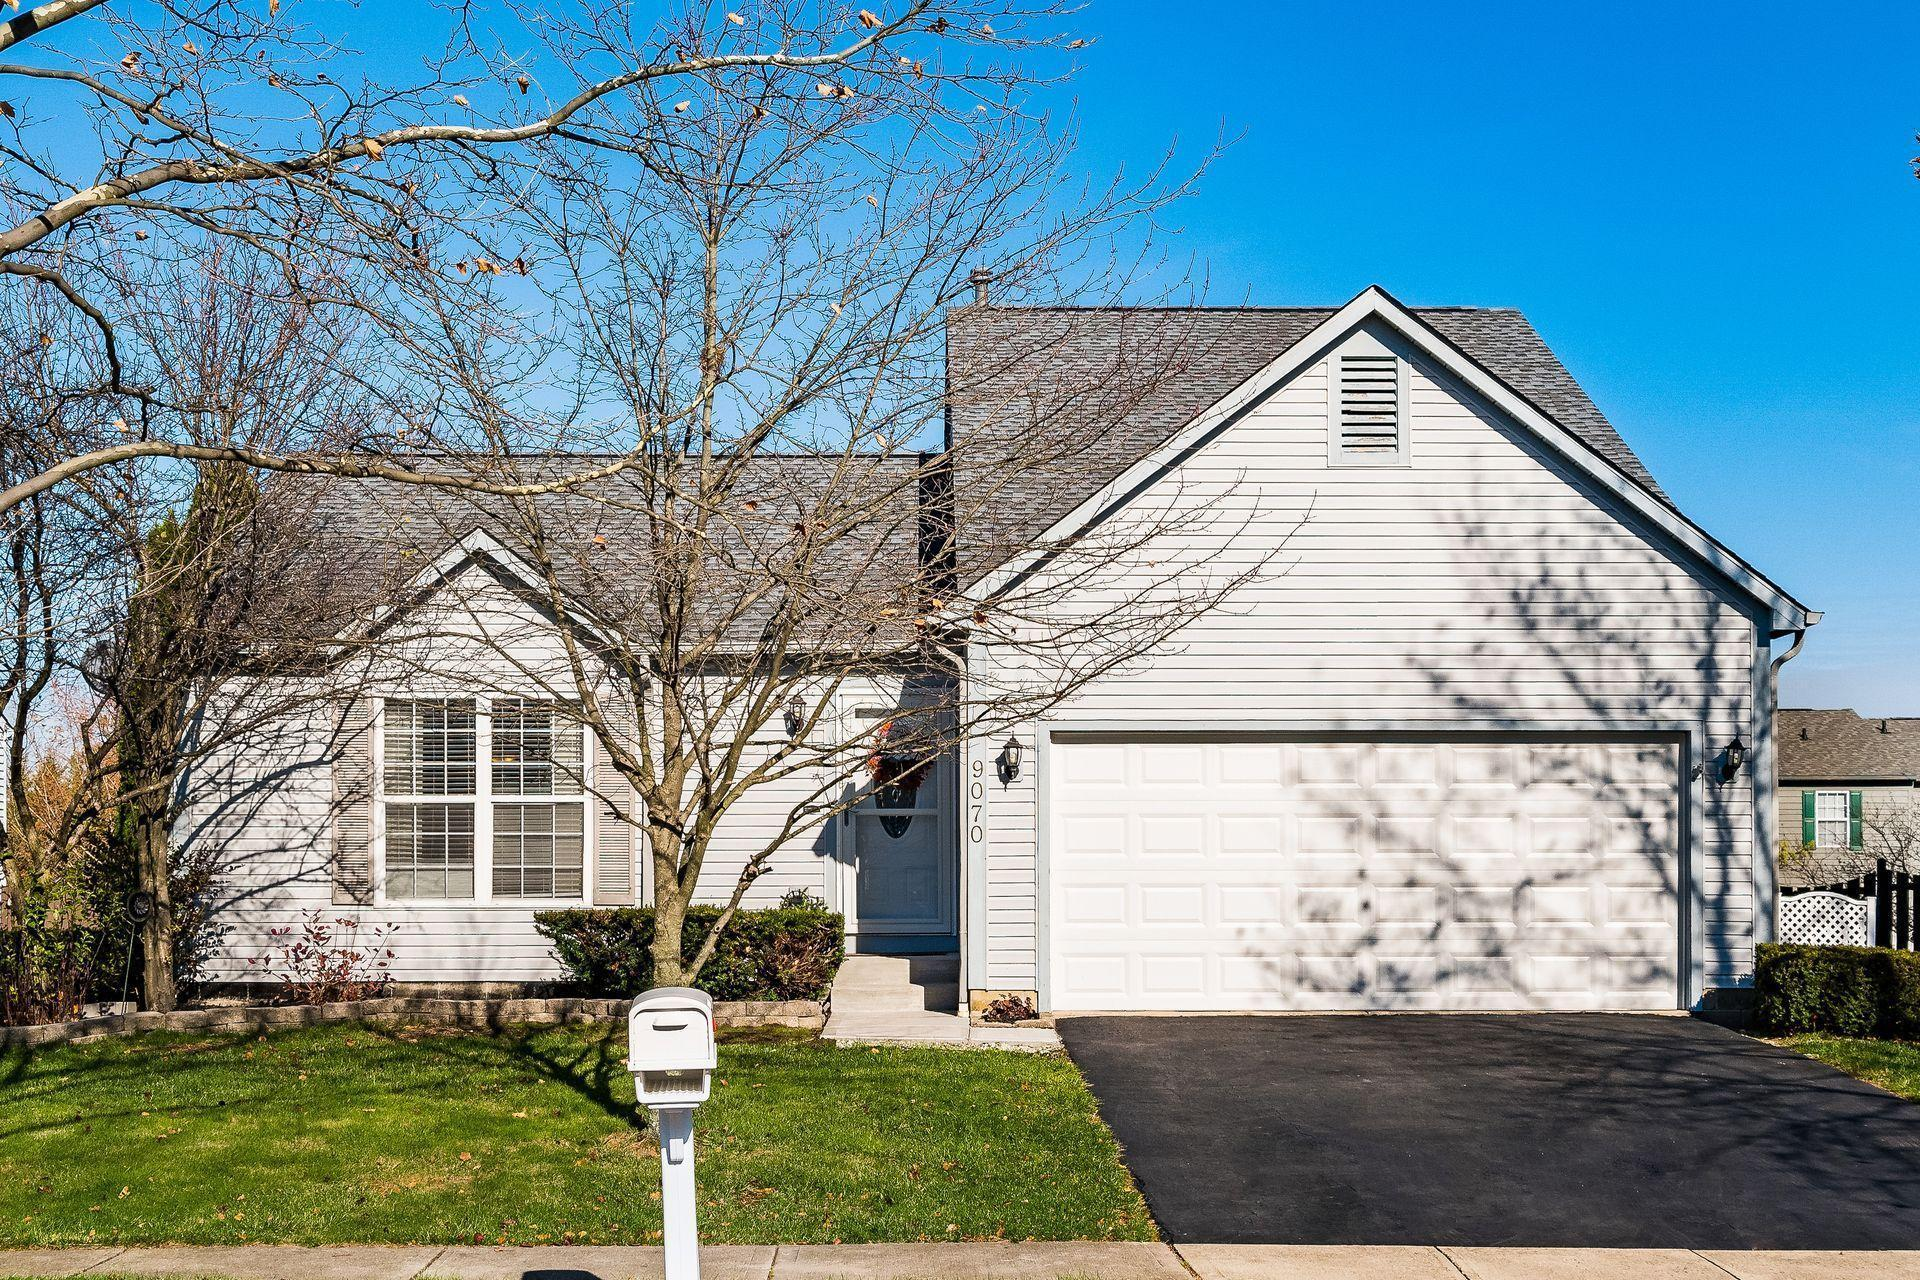 9070 Longstone Drive, Lewis Center, Ohio 43035, 3 Bedrooms Bedrooms, ,2 BathroomsBathrooms,Residential,For Sale,Longstone,220040883